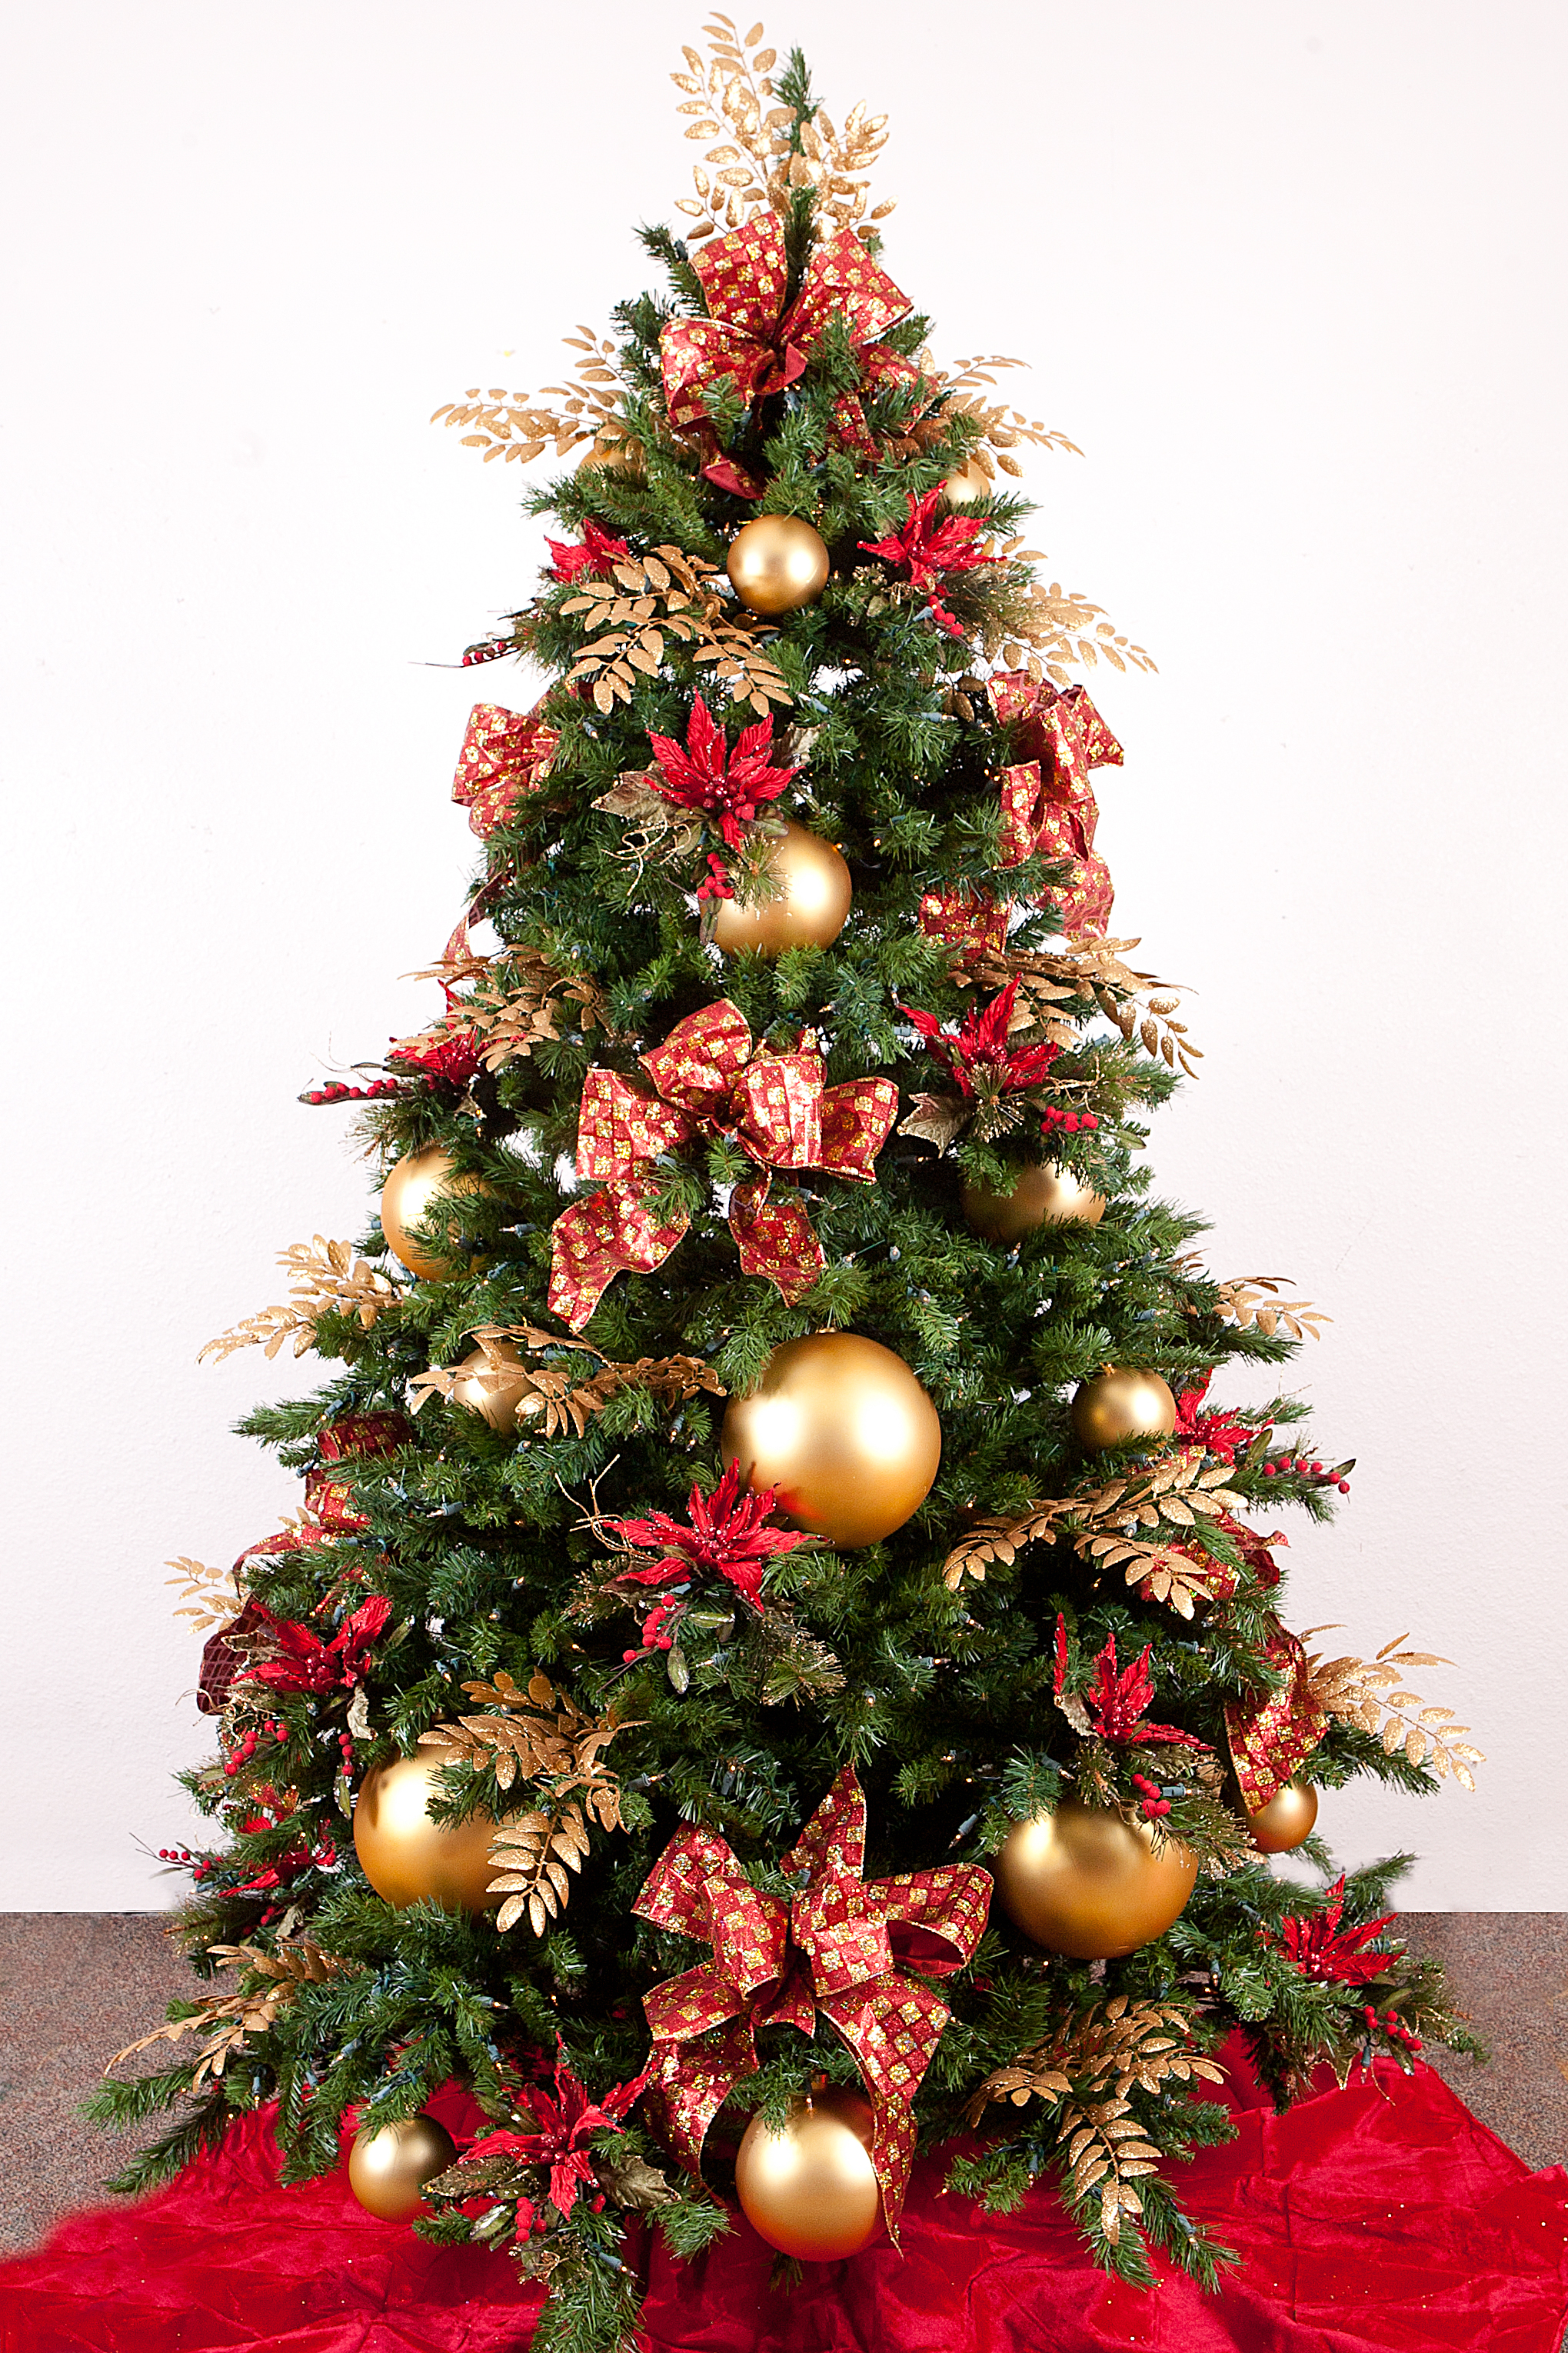 Christmas tree ideas show me decorating Christmas tree ornaments ideas